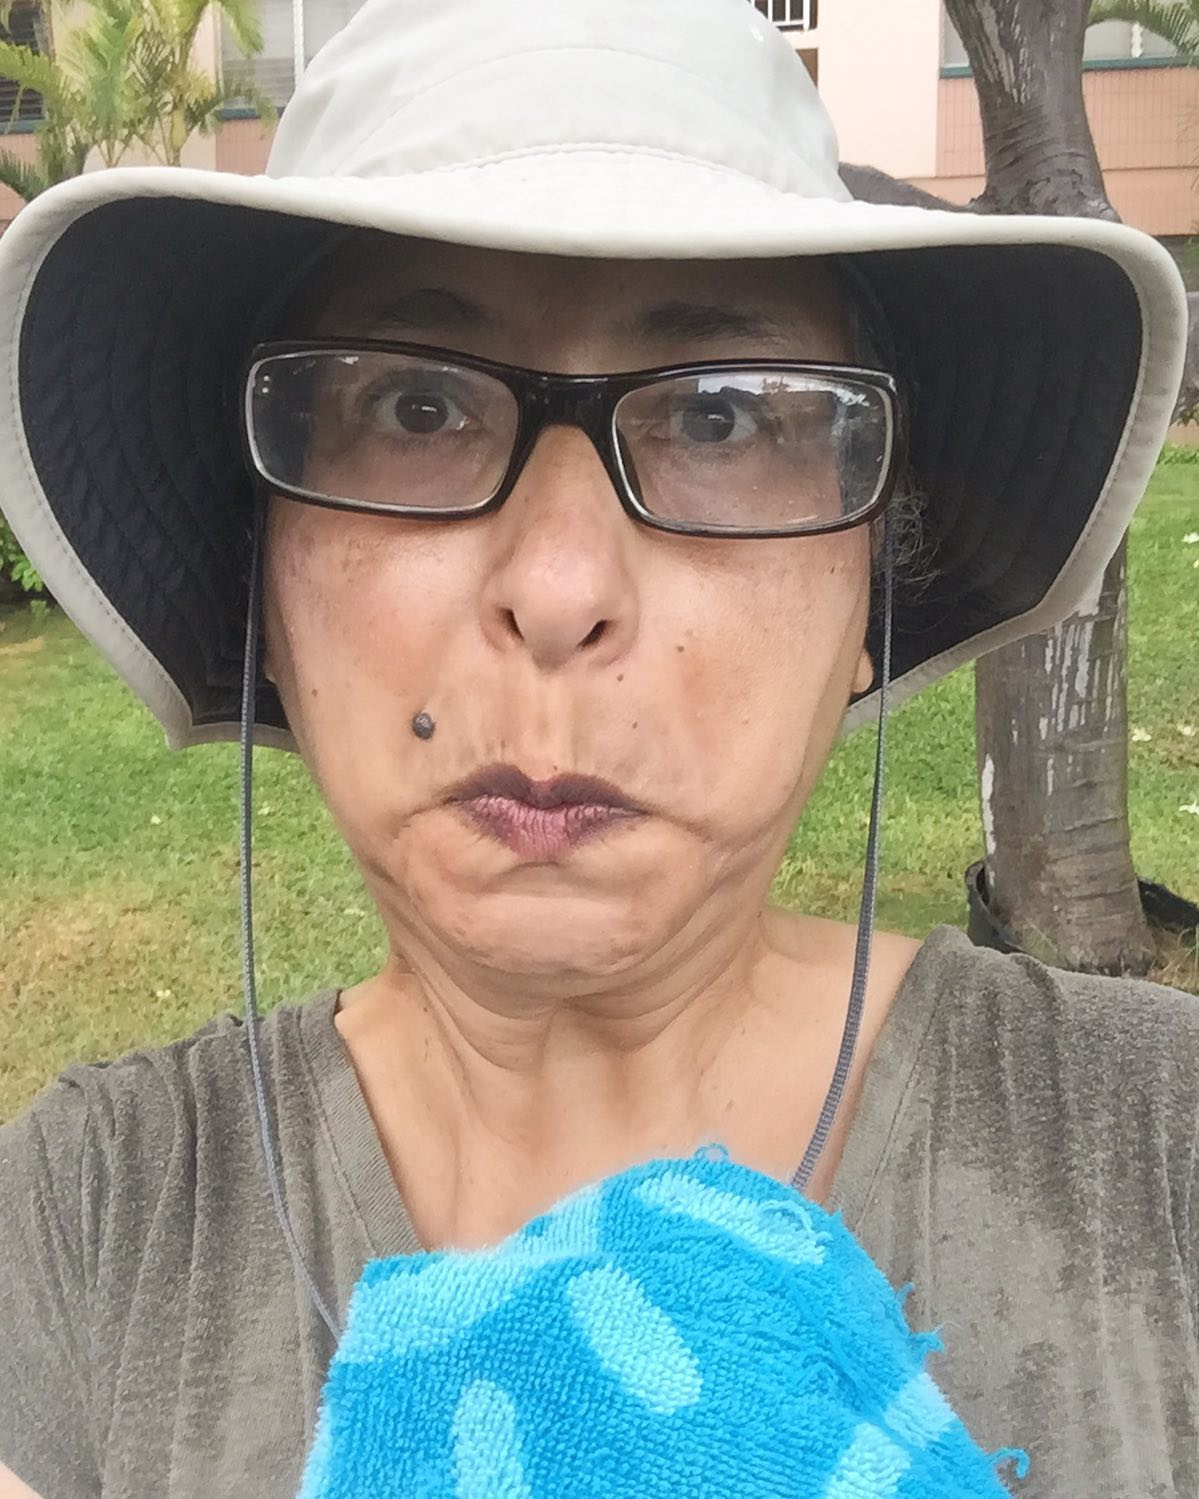 """The face you make when you get drenched going on """"just a quick walk"""" on the beach during a break in the rain. 😬🤣🤣 I'm happy to report though that my sun hat apparently doubles as a rain hat. #ichoosebeauty Day 2856"""